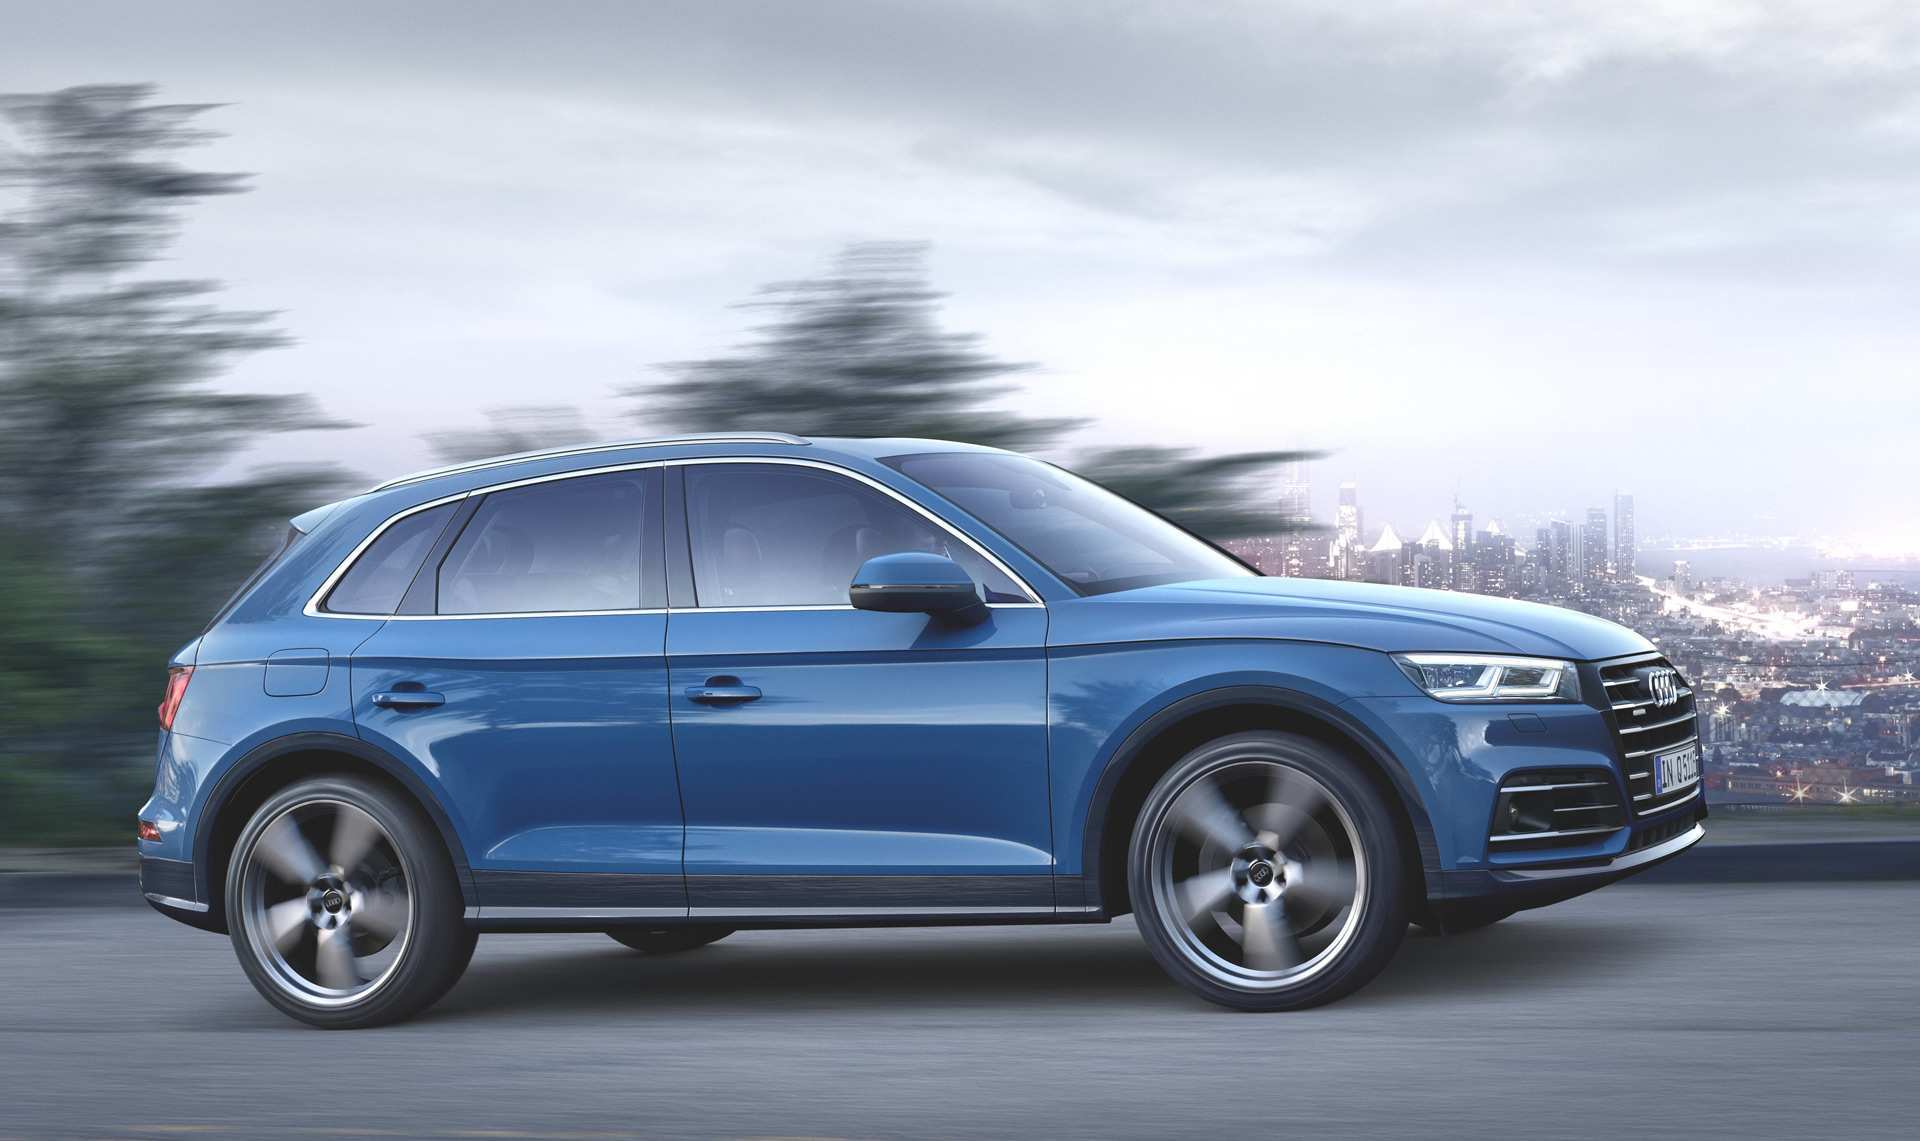 26 New Audi Q5 New Model 2020 Rumors